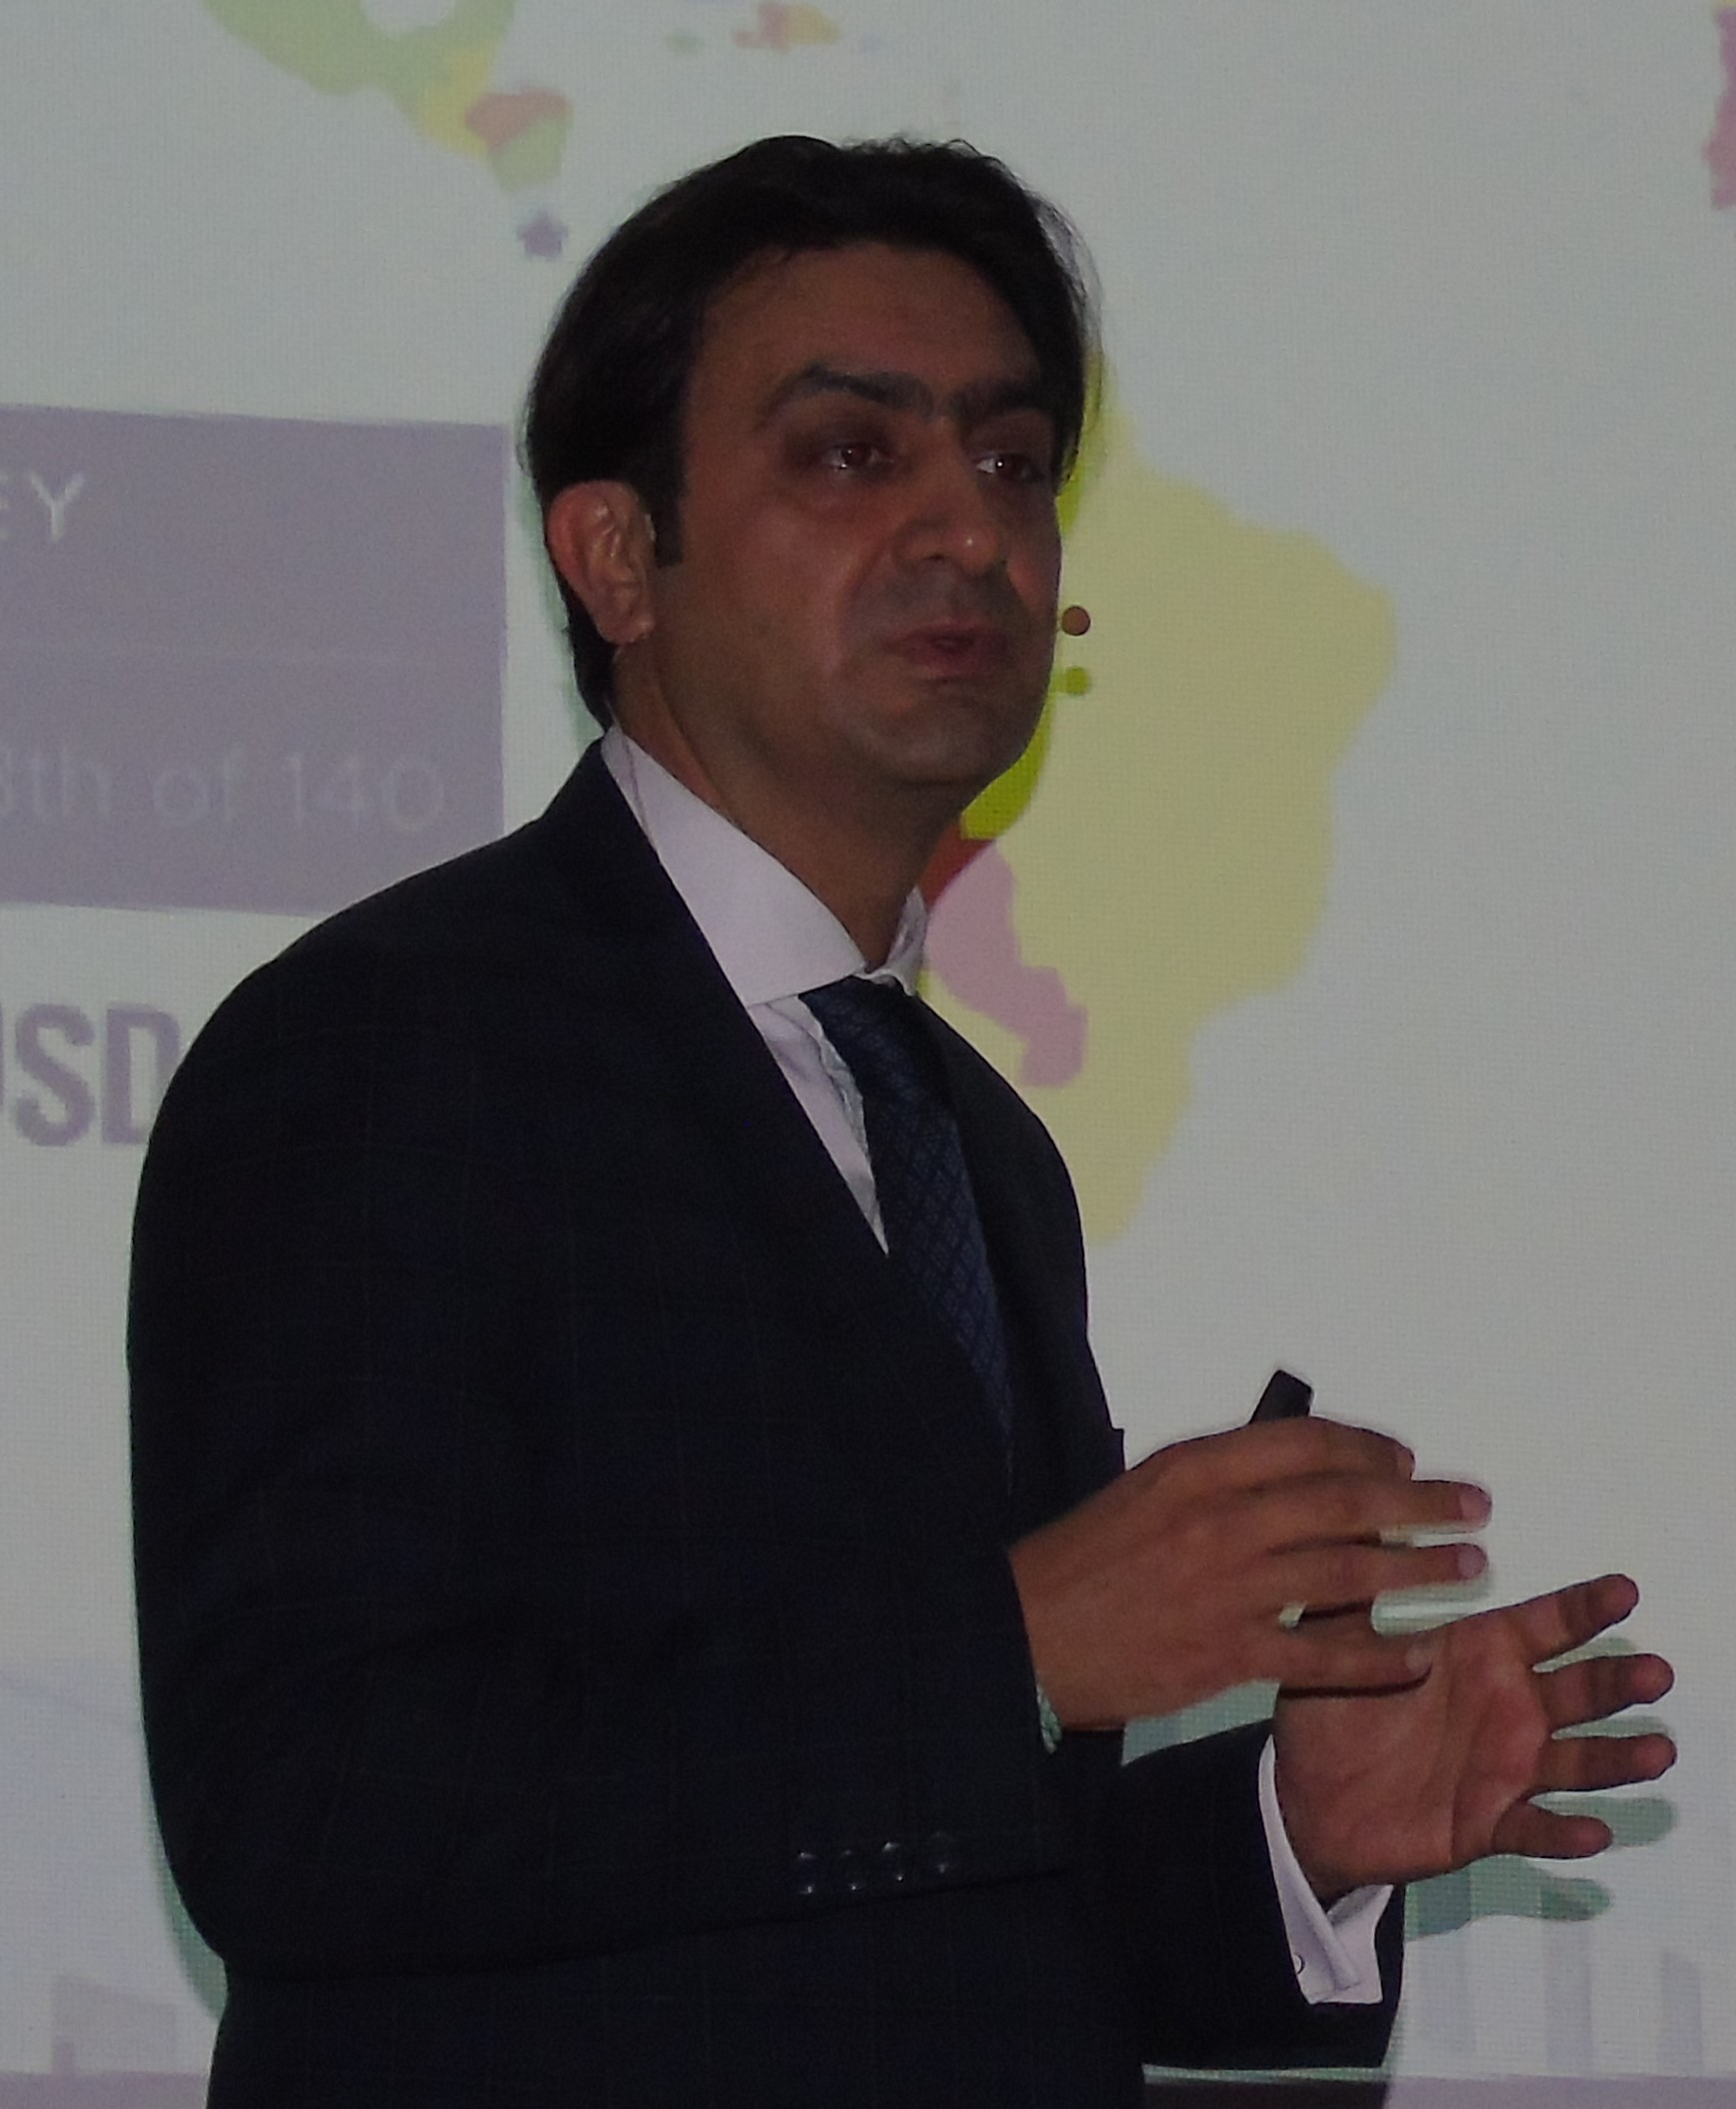 Mr. Refik Gulbahar, Deputy General Manager – Technical, DENGE KİMYA VE TEKSTİL SANAYİ TİC. A.Ş.